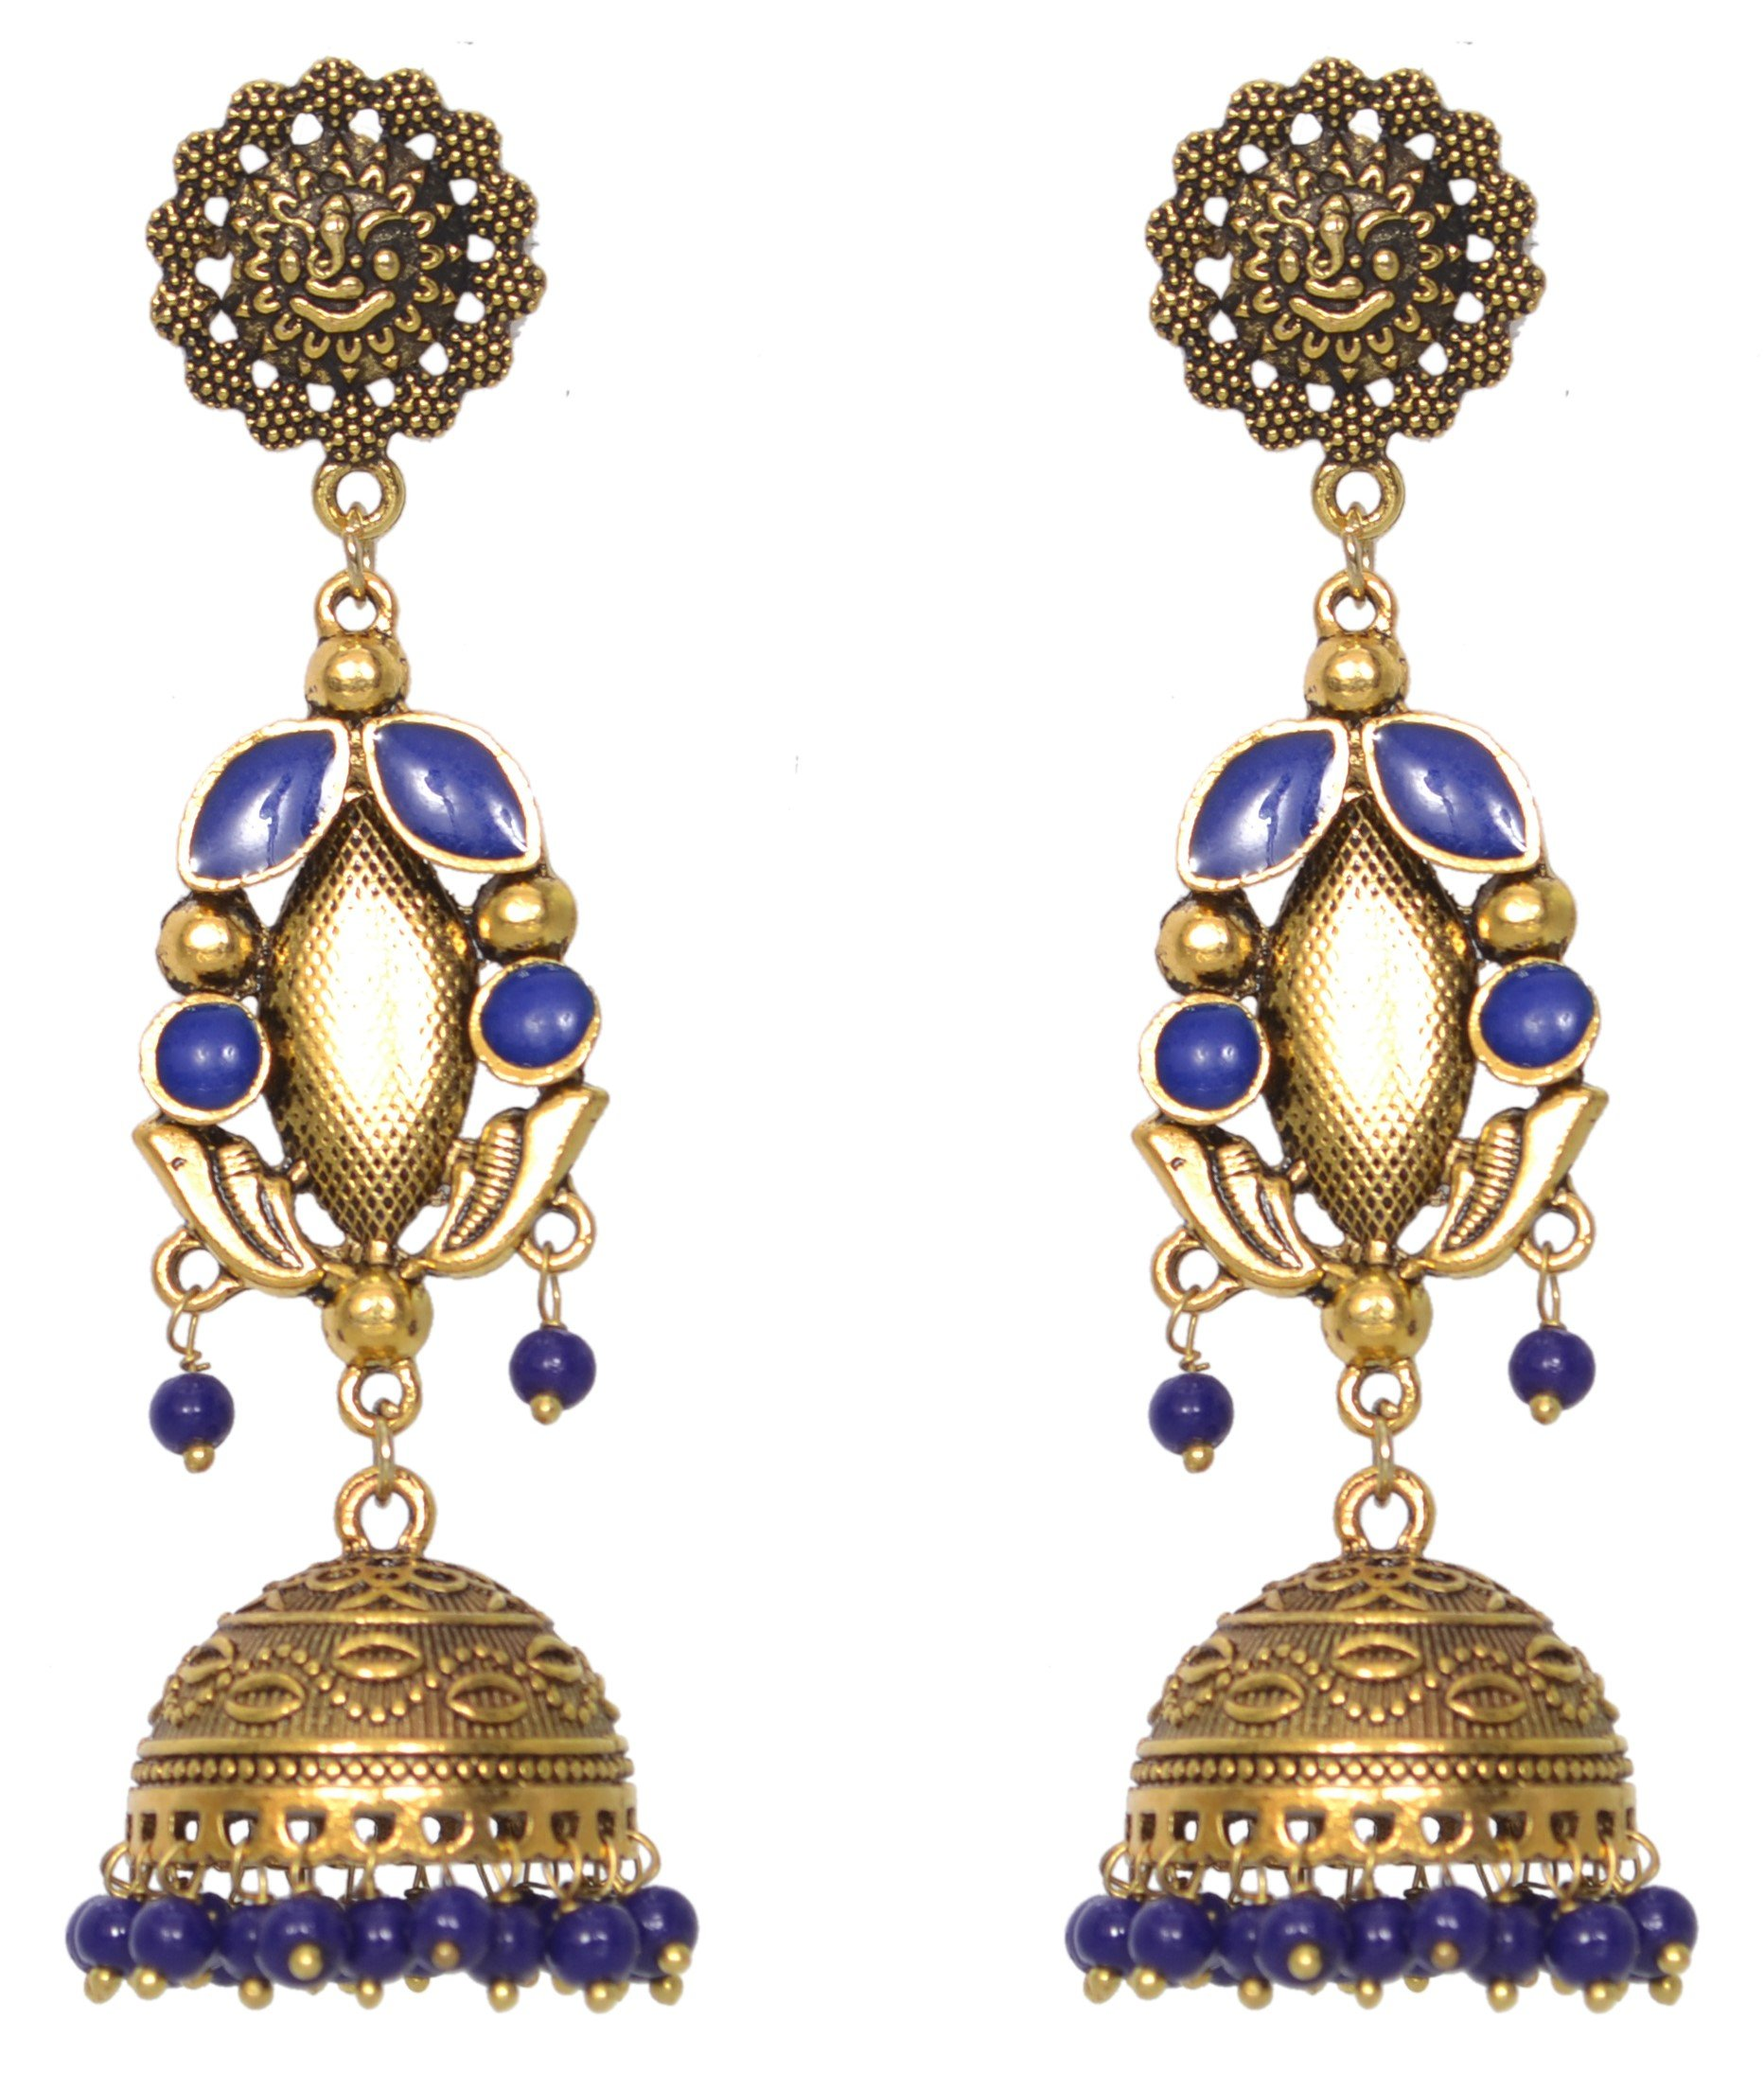 Sansar India Oxidized Stud Long Jhumka Indian Earrings Jewelry for Girls and Women 1192